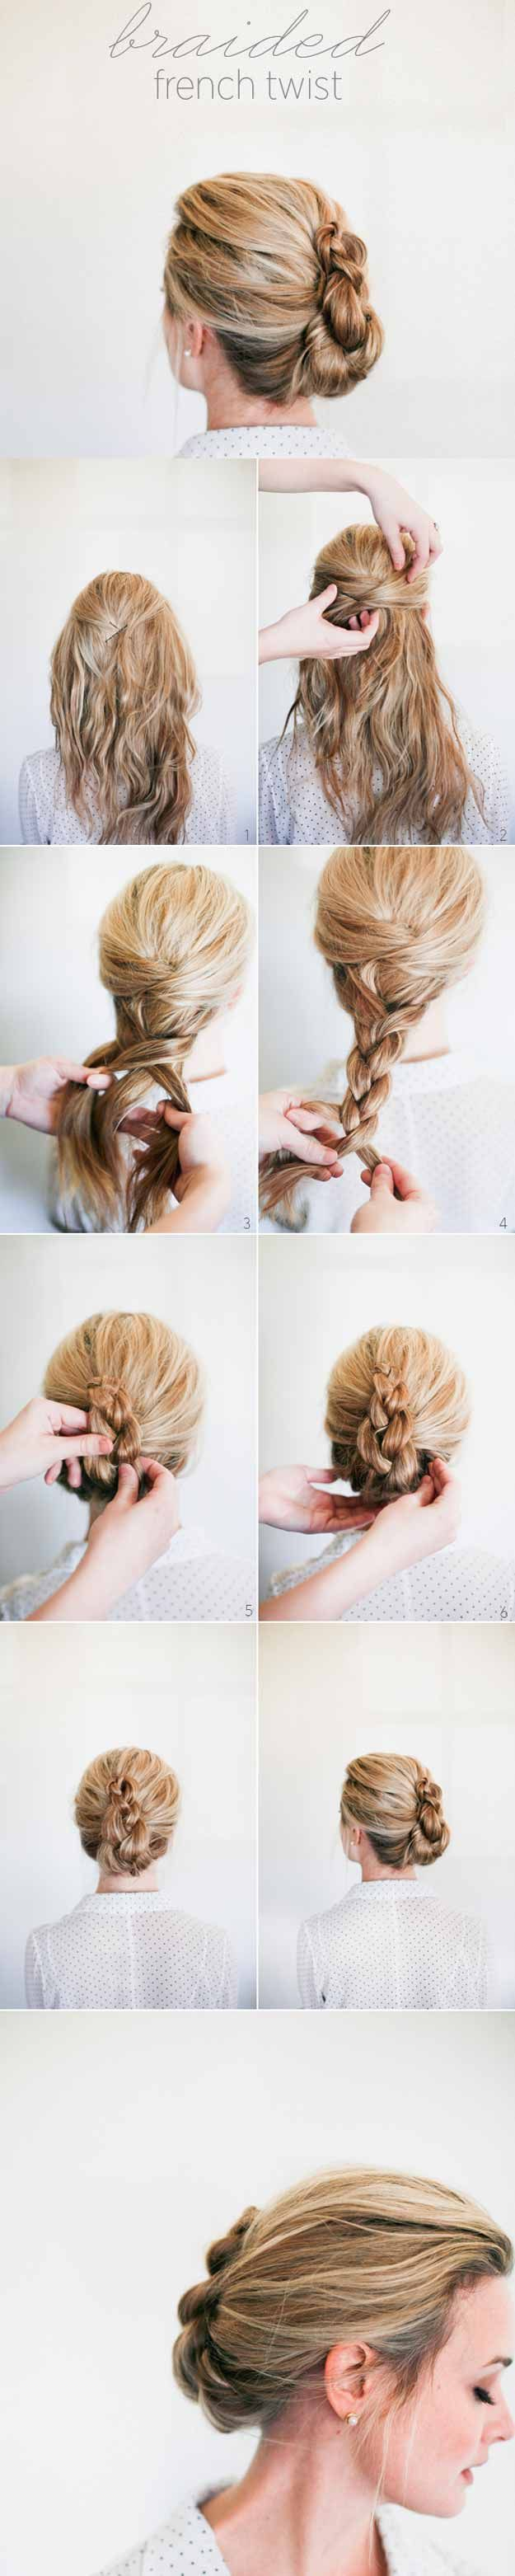 Best 5 Minute Hairstyles - Braided French Twist How To - Quick And Easy Hairstyles and Haircuts For Long Hair, That Are Super Simple and Great For Busy Mornings Or For School. Braids, Undo's, Ponytail Looks And Hair Styles For Short Hair, Medium Length Hair, And Long Hair. Step By Step Tutorials, Tips, And Hacks For Teens, For Kids, And For Wet And Dry Hair. Great Looks For Curls, Simple And Cute Braids With Half Up Half Down Hairstyles. Five Minute Looks For Church, For Shoulder Length…